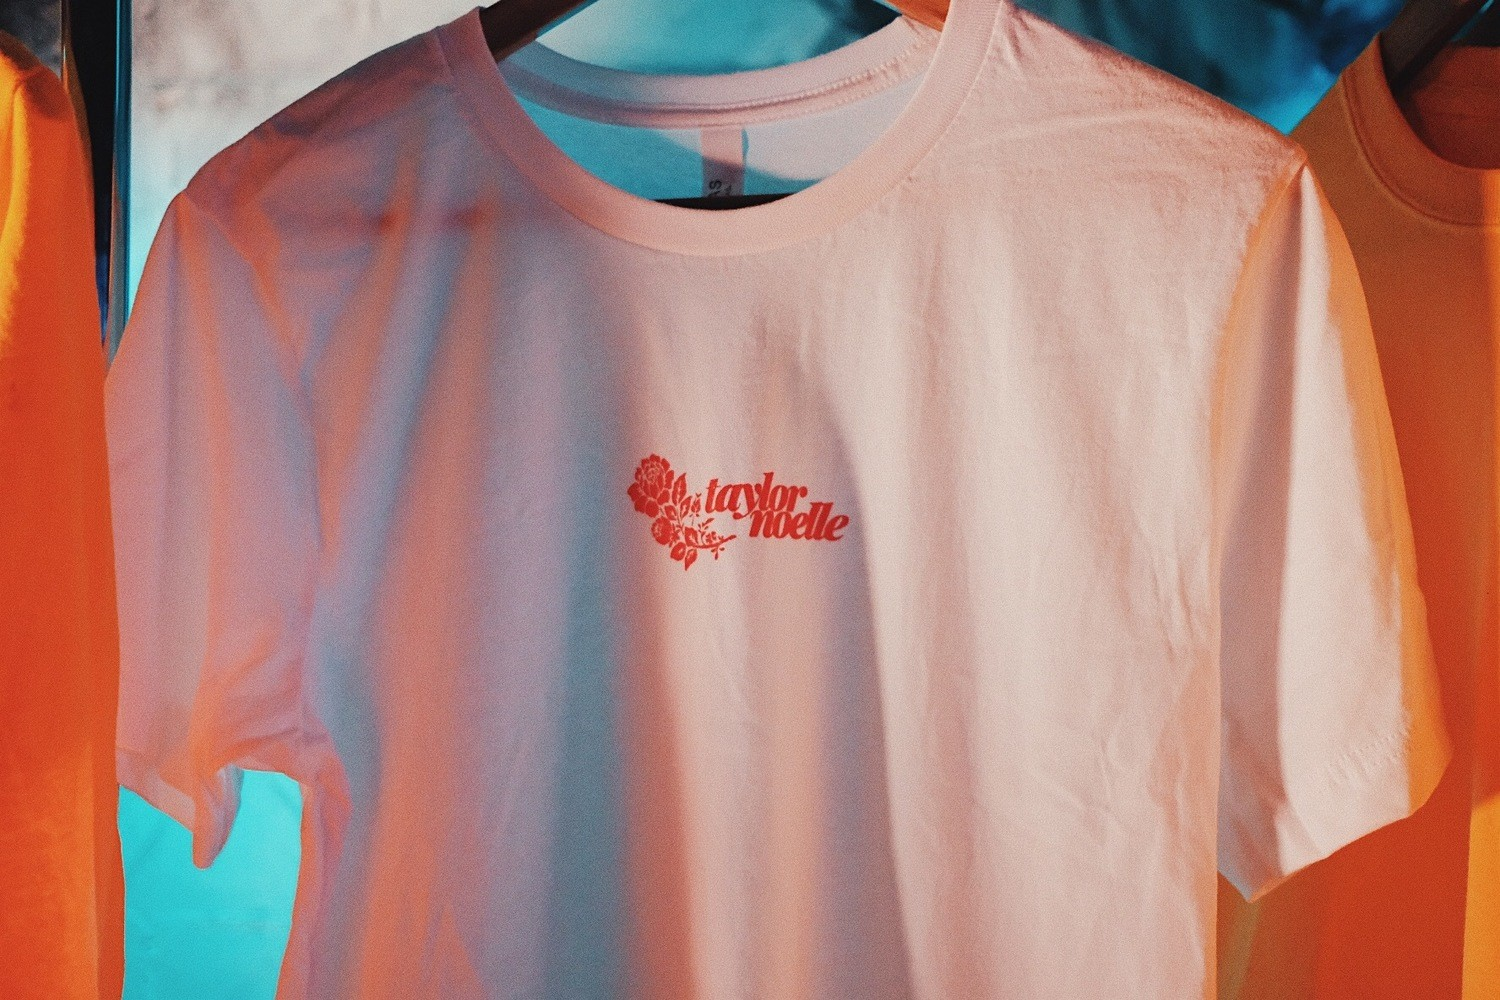 taylor noelle red rose white tee